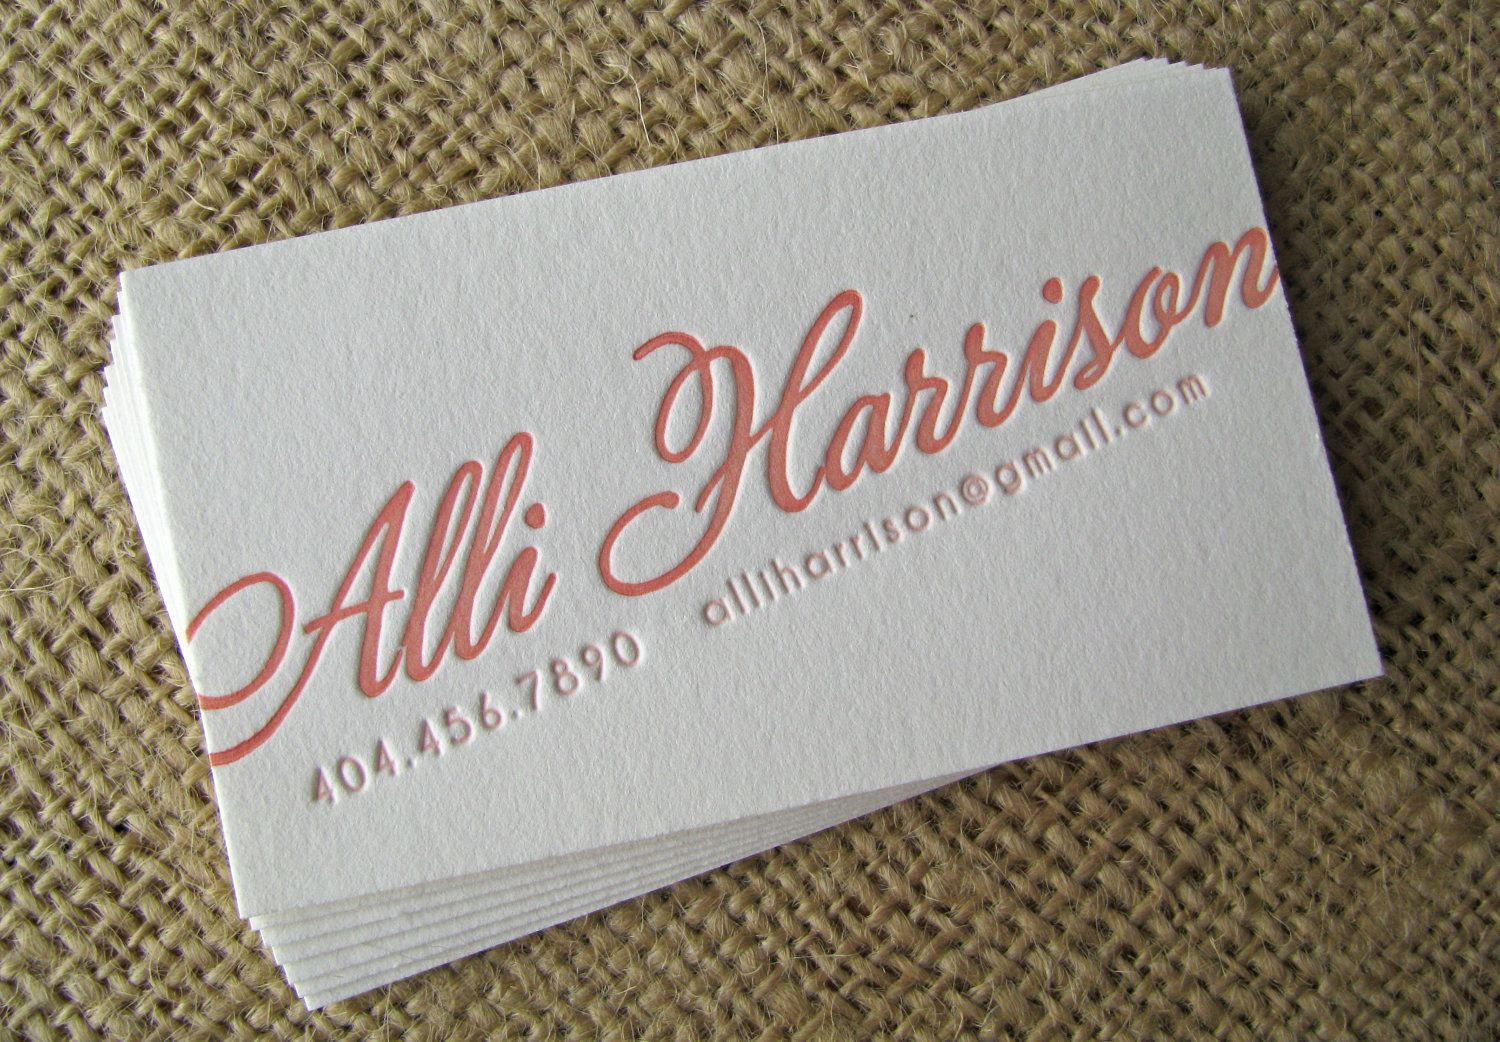 New Designs Letterpress Calling Cards 1 Color By Chathamandcaron Via Etsy